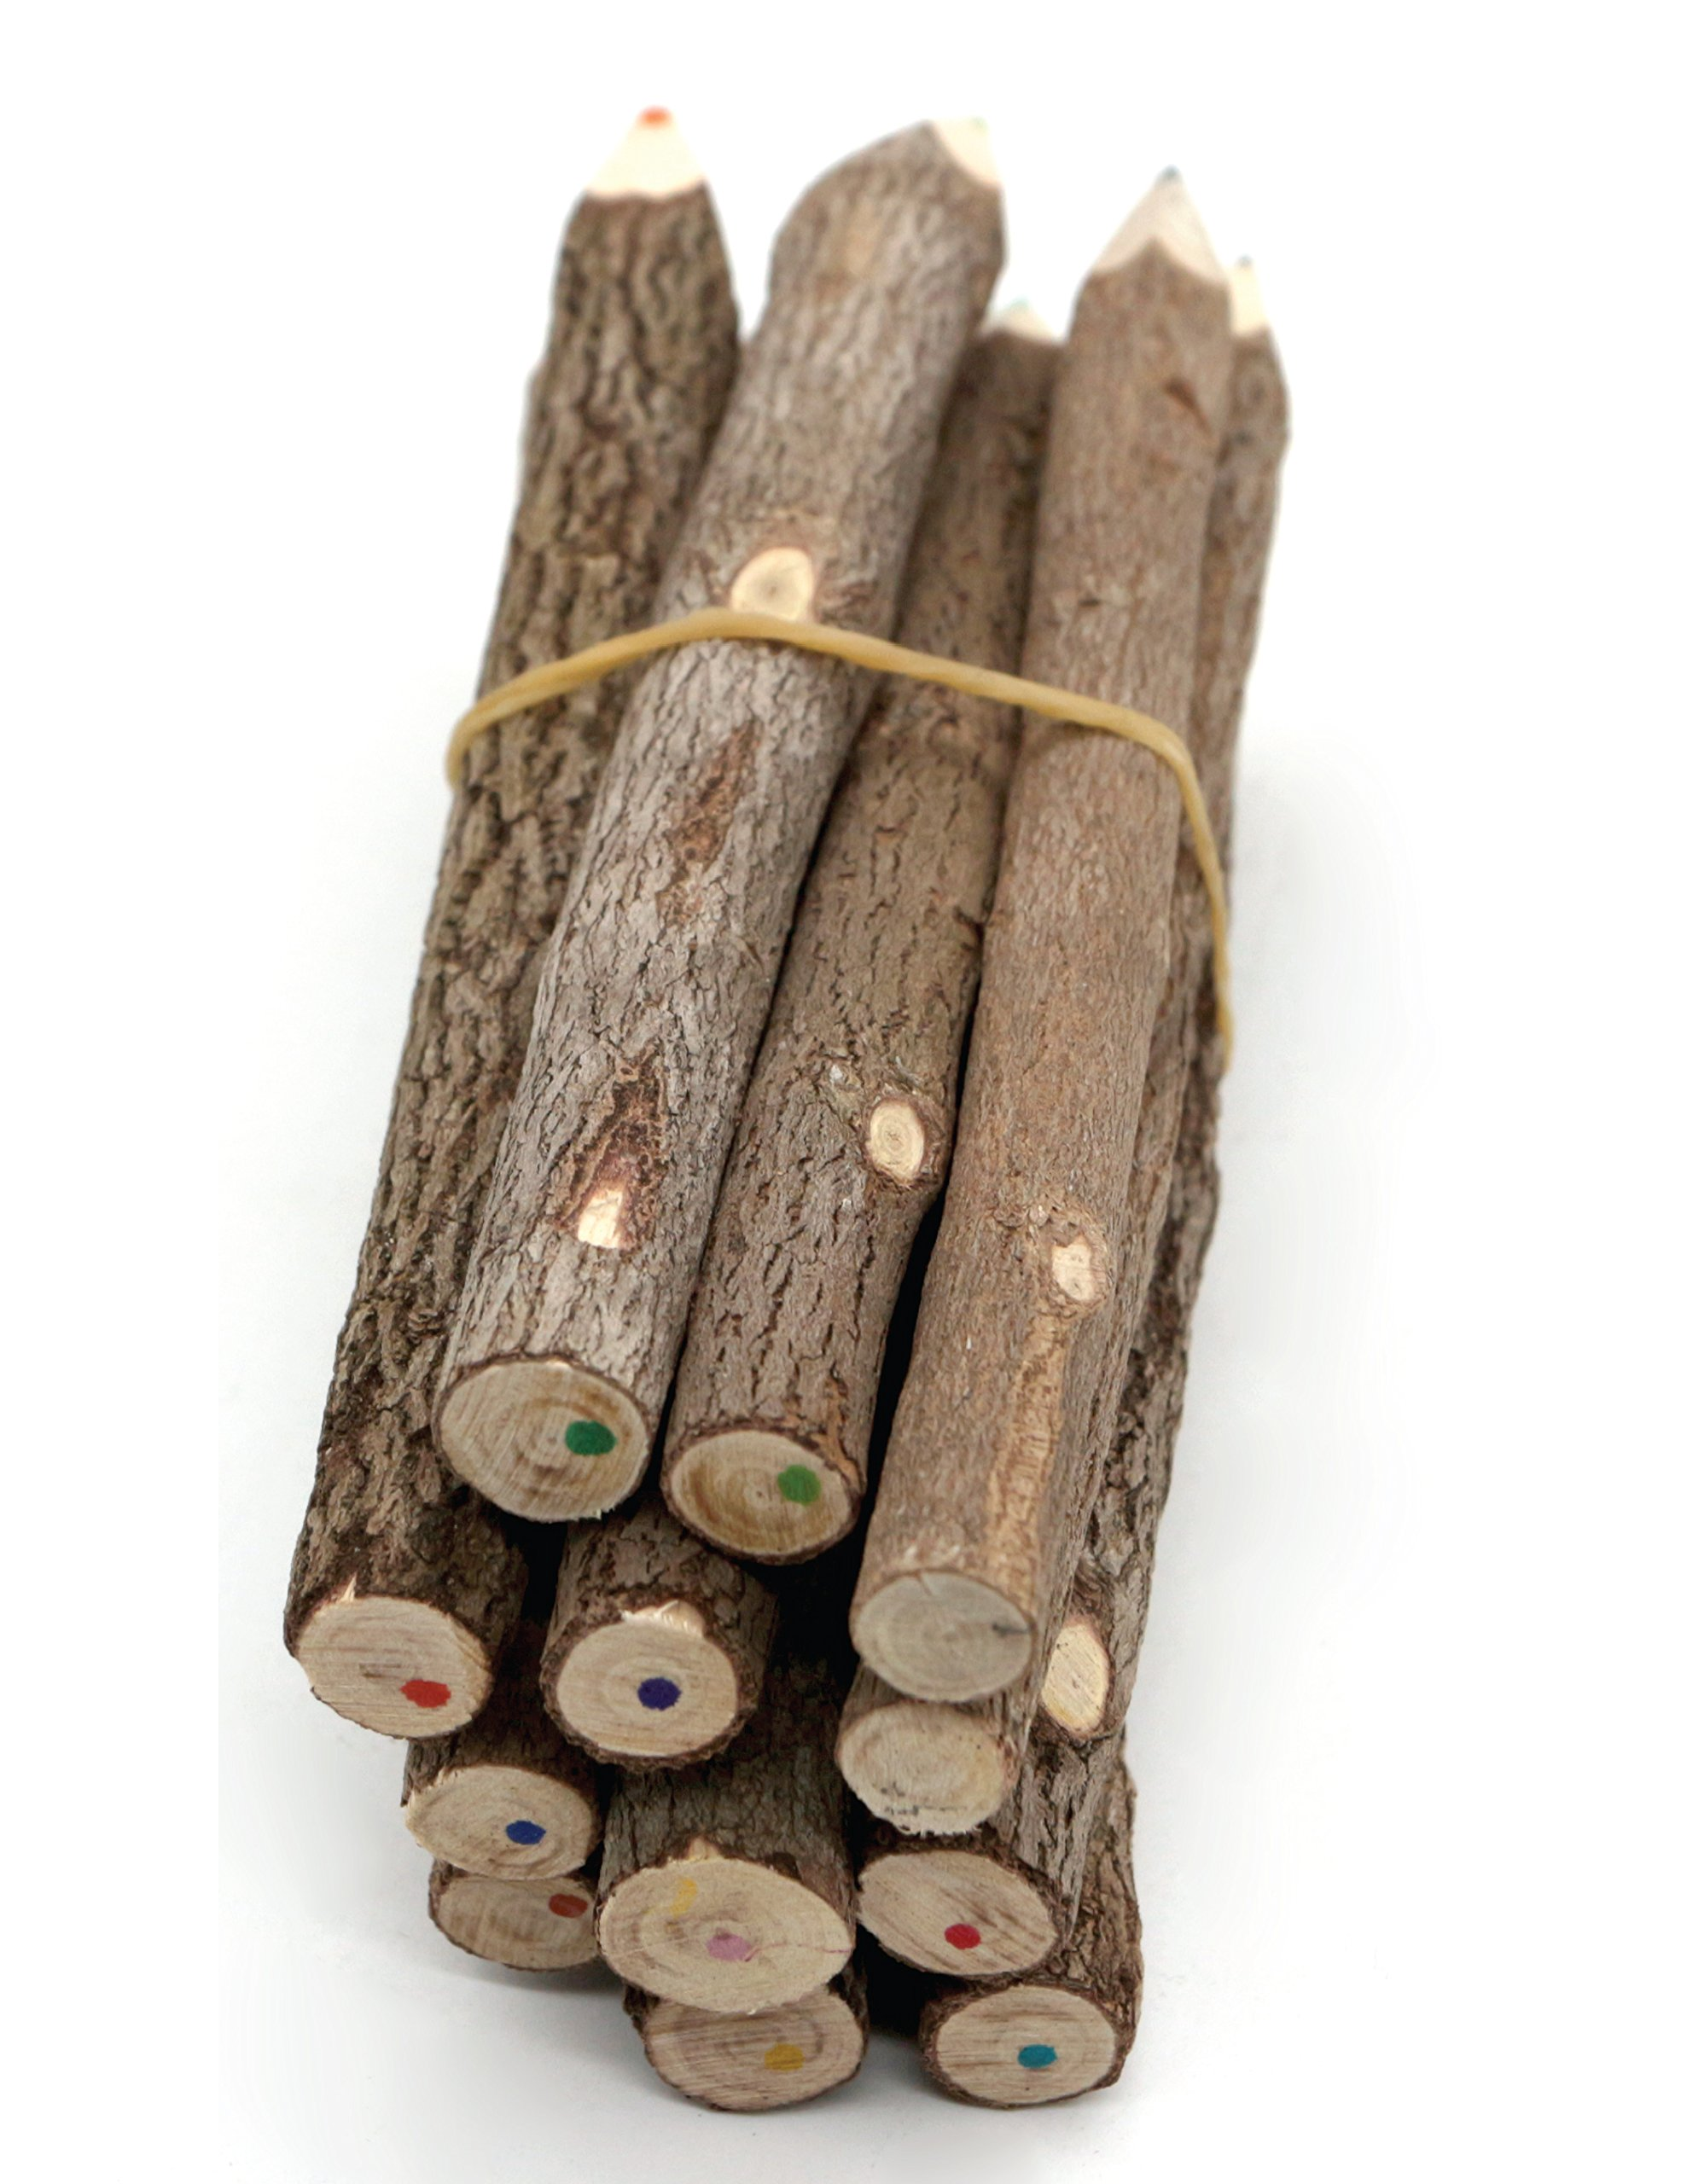 Assorted-Stick Twig Colored Outdoor Wooden Pencils Tree Child Camping Decorative Color by BSIRI (Image #5)